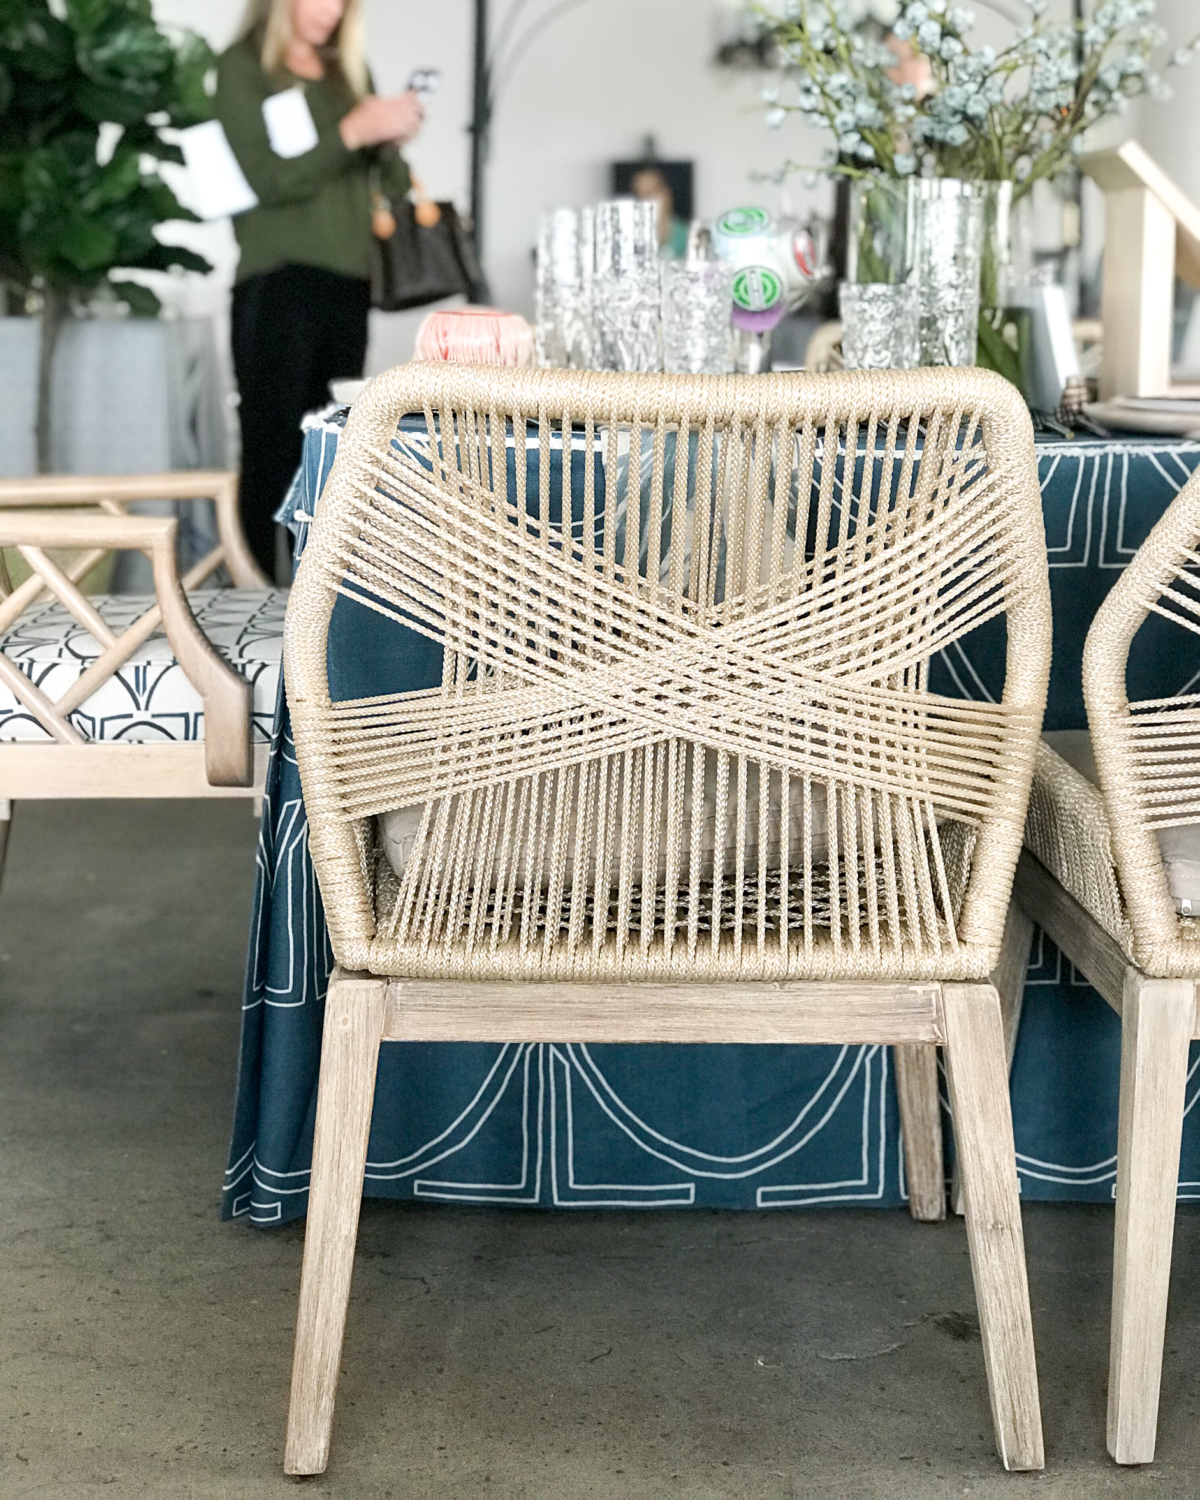 A recap of the 2017 Boston Design Market - an annual event hosted by the Boston Design Center centering around what is new and exciting in interior design.